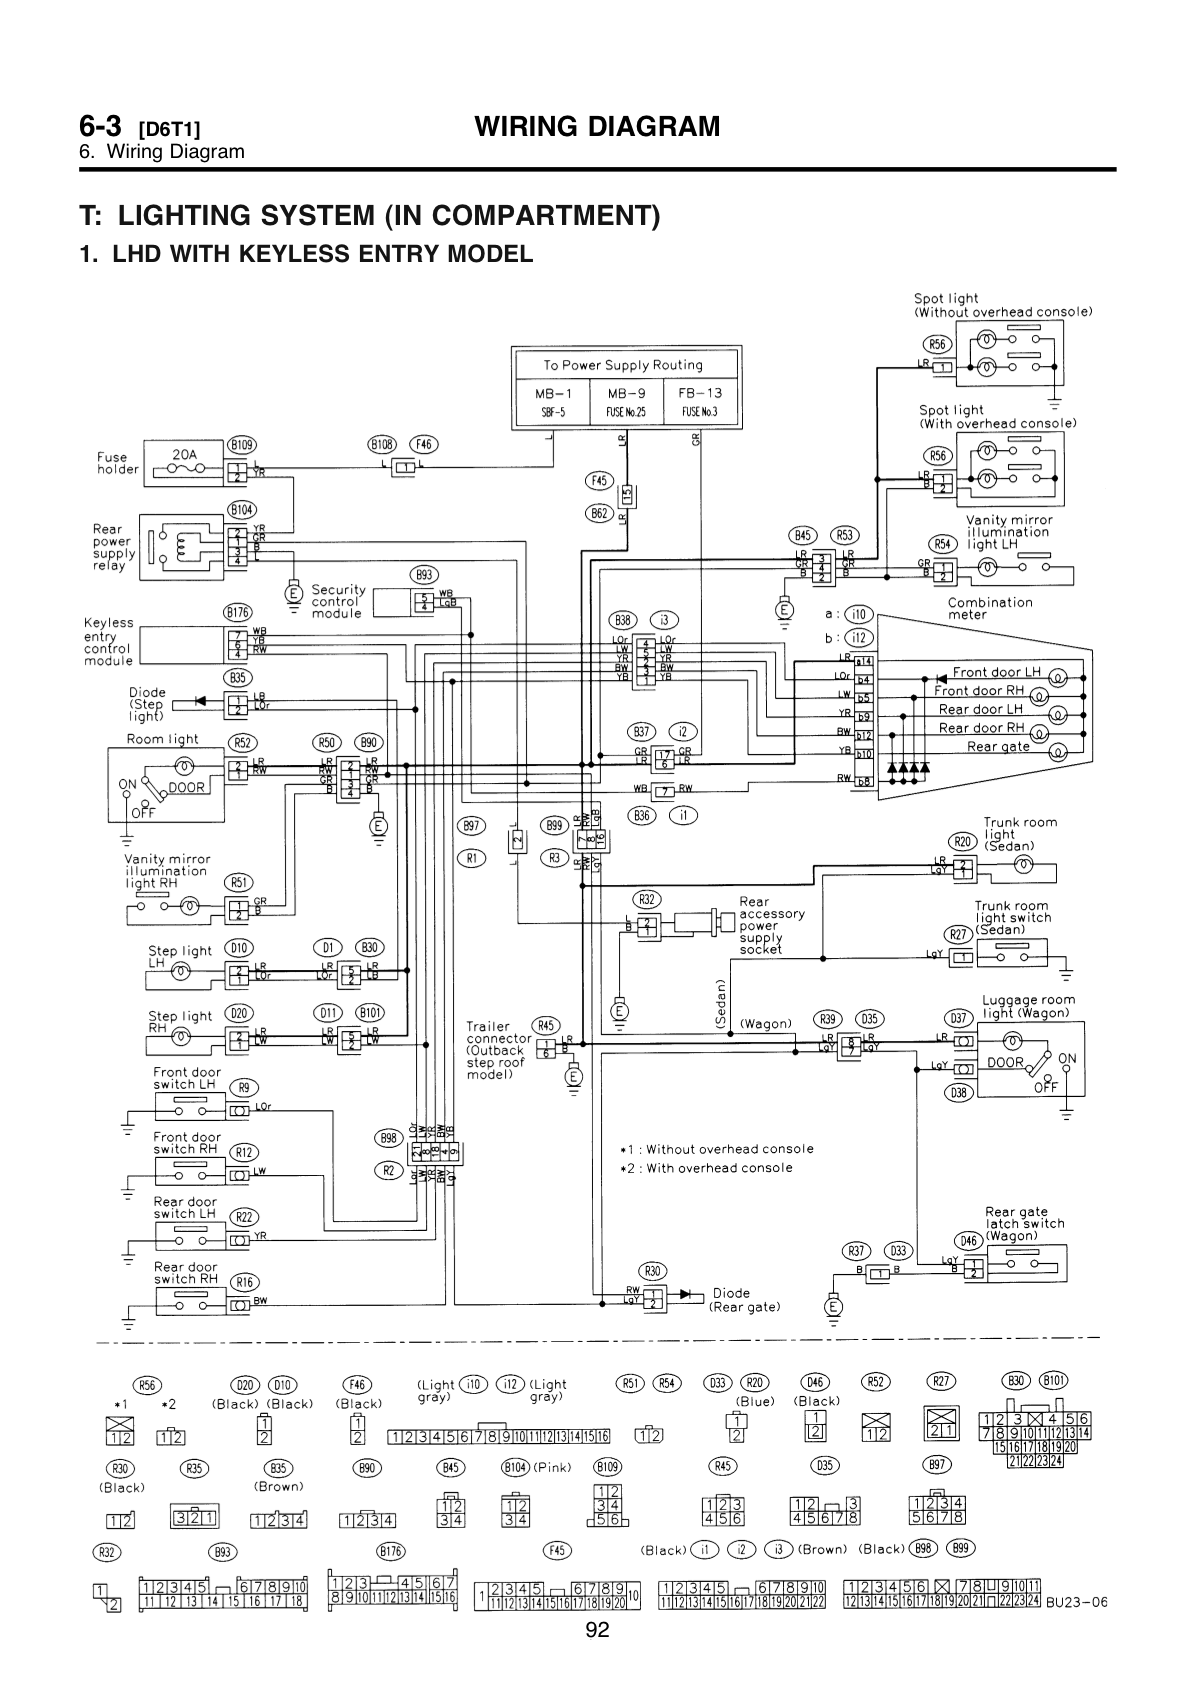 Subaru Alternator Wiring Diagram Internally Regulated 1967 Cadillac